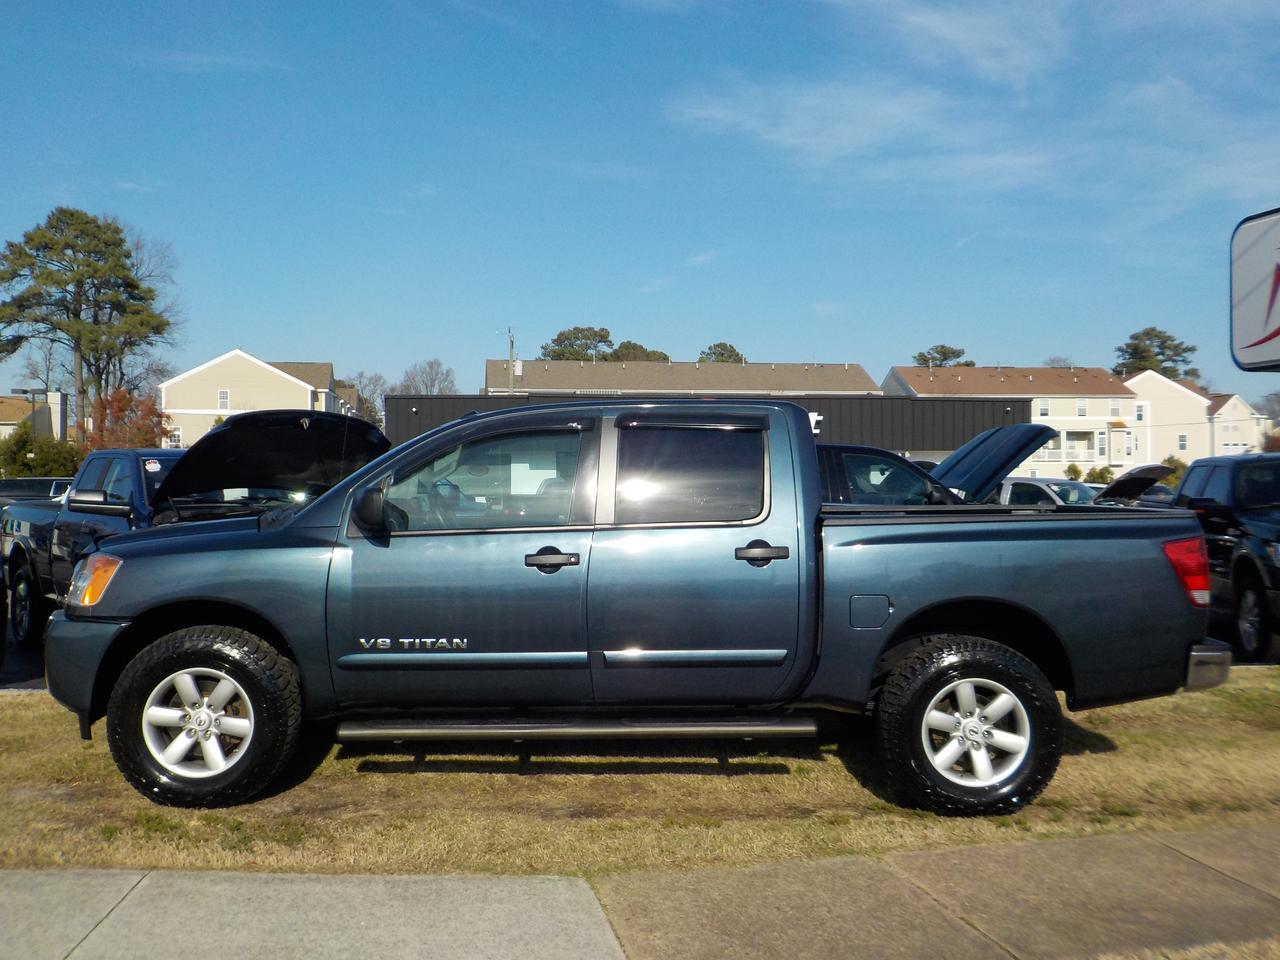 2014 NISSAN TITAN SV 4X4, WARRANTY, BLUETOOTH, POWER SLIDING REAR WINDOW, PARKING SENSORS, BACKUP CAMERA! Virginia Beach VA